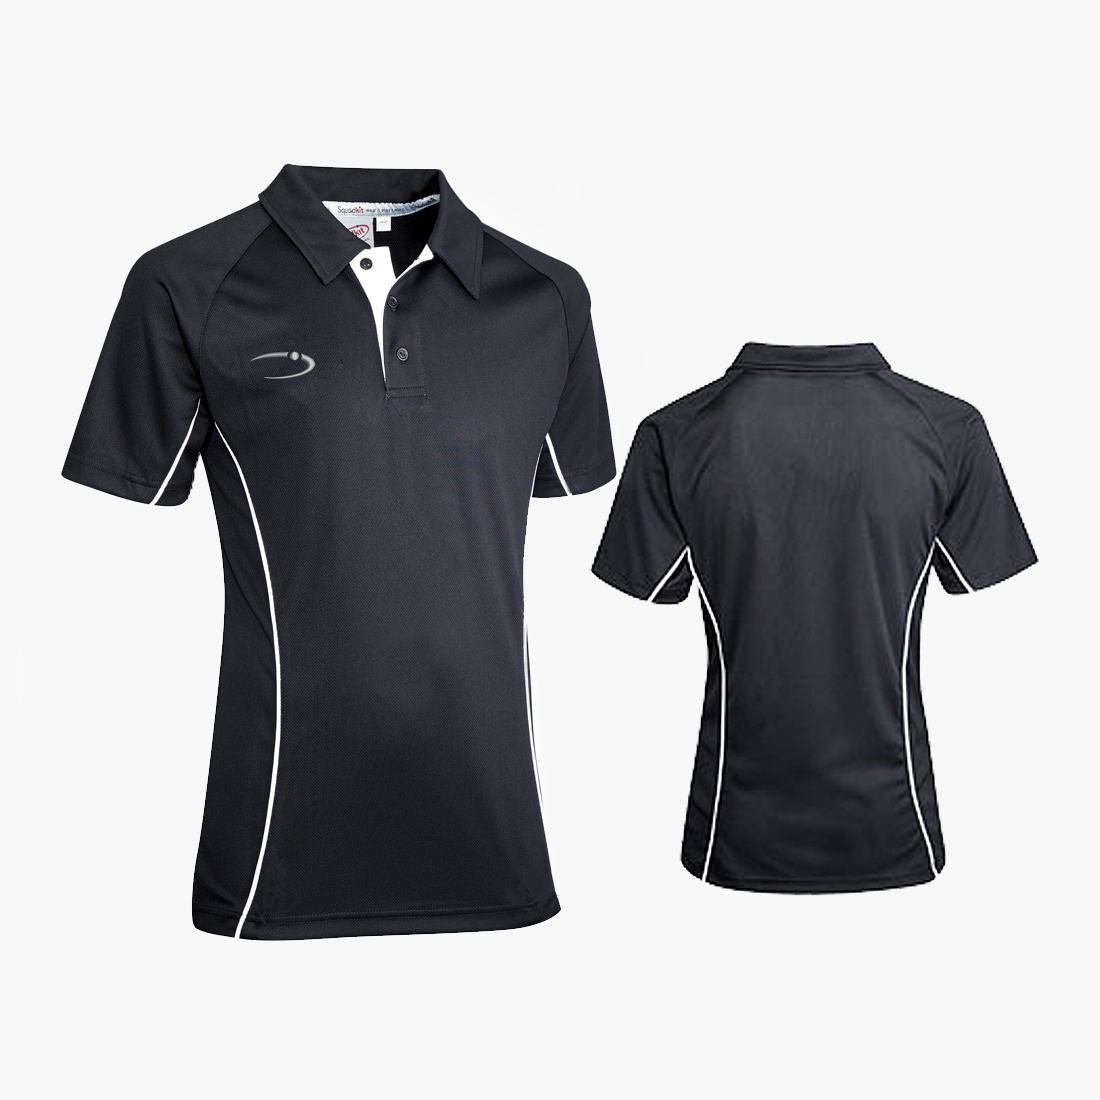 HYDROCOOL MEN'S POLO SHIRT